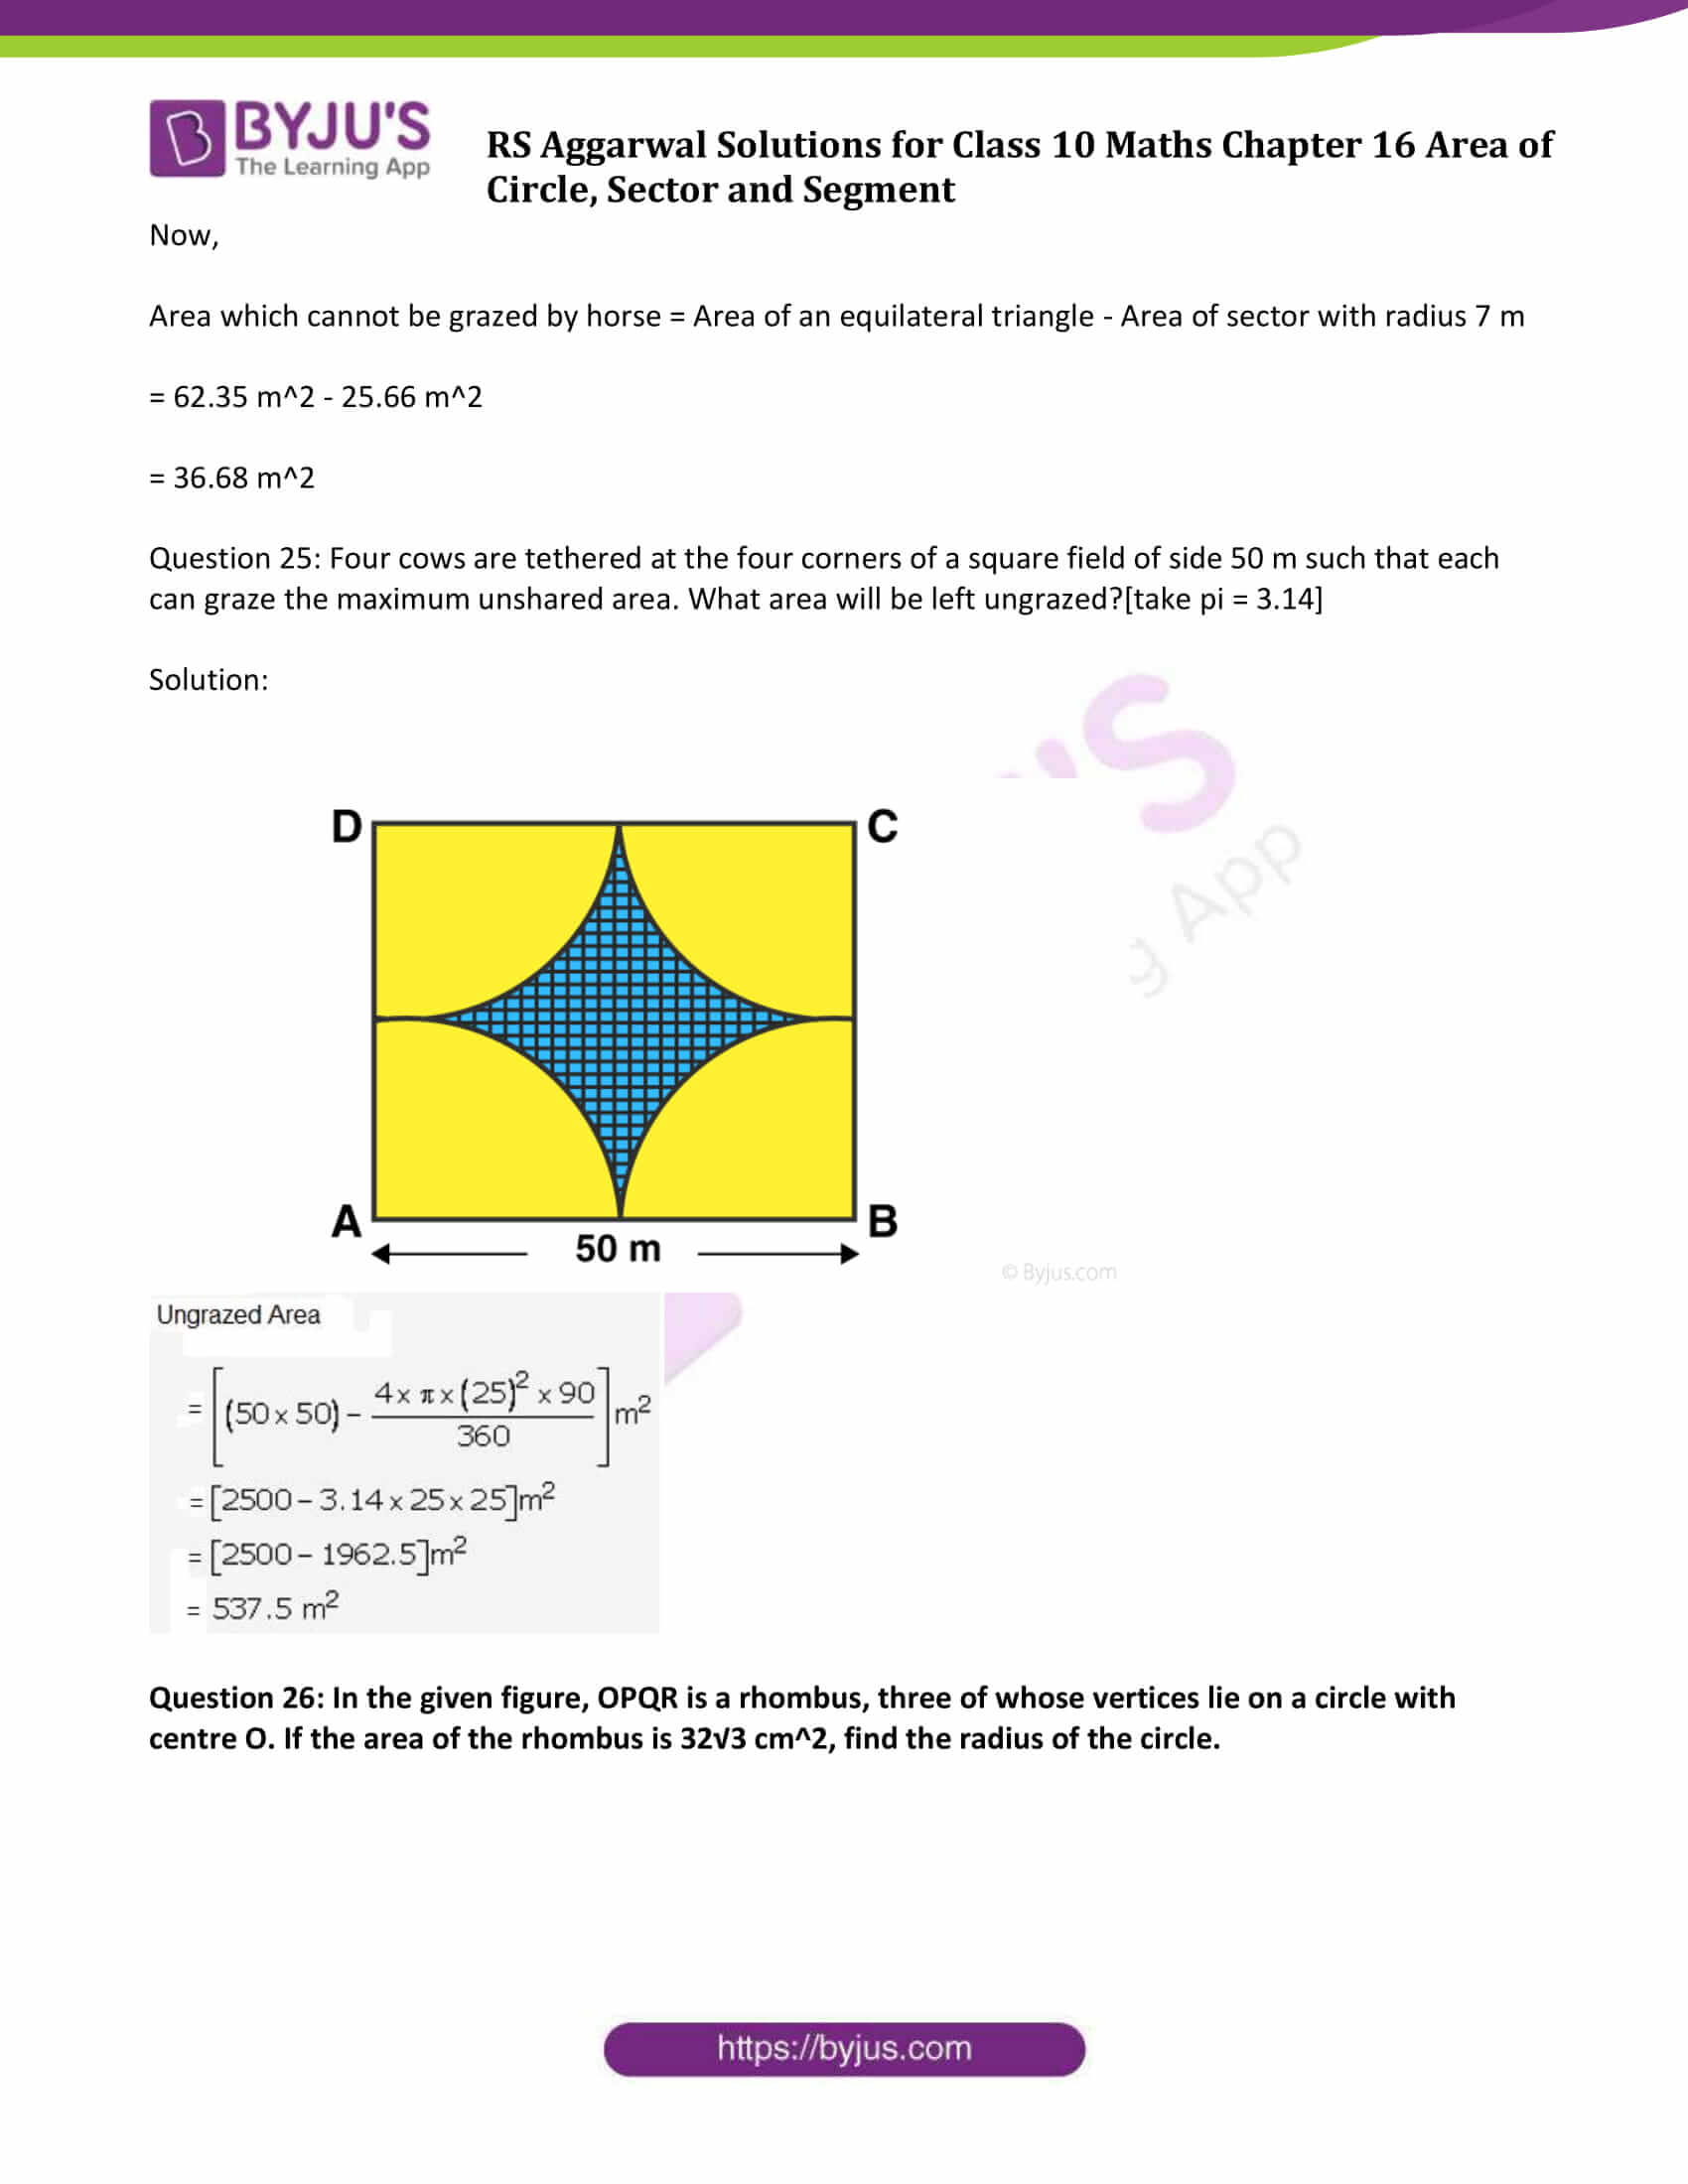 RS Aggarwal Sol class 10 Maths Chapter 16 Exercise 16A